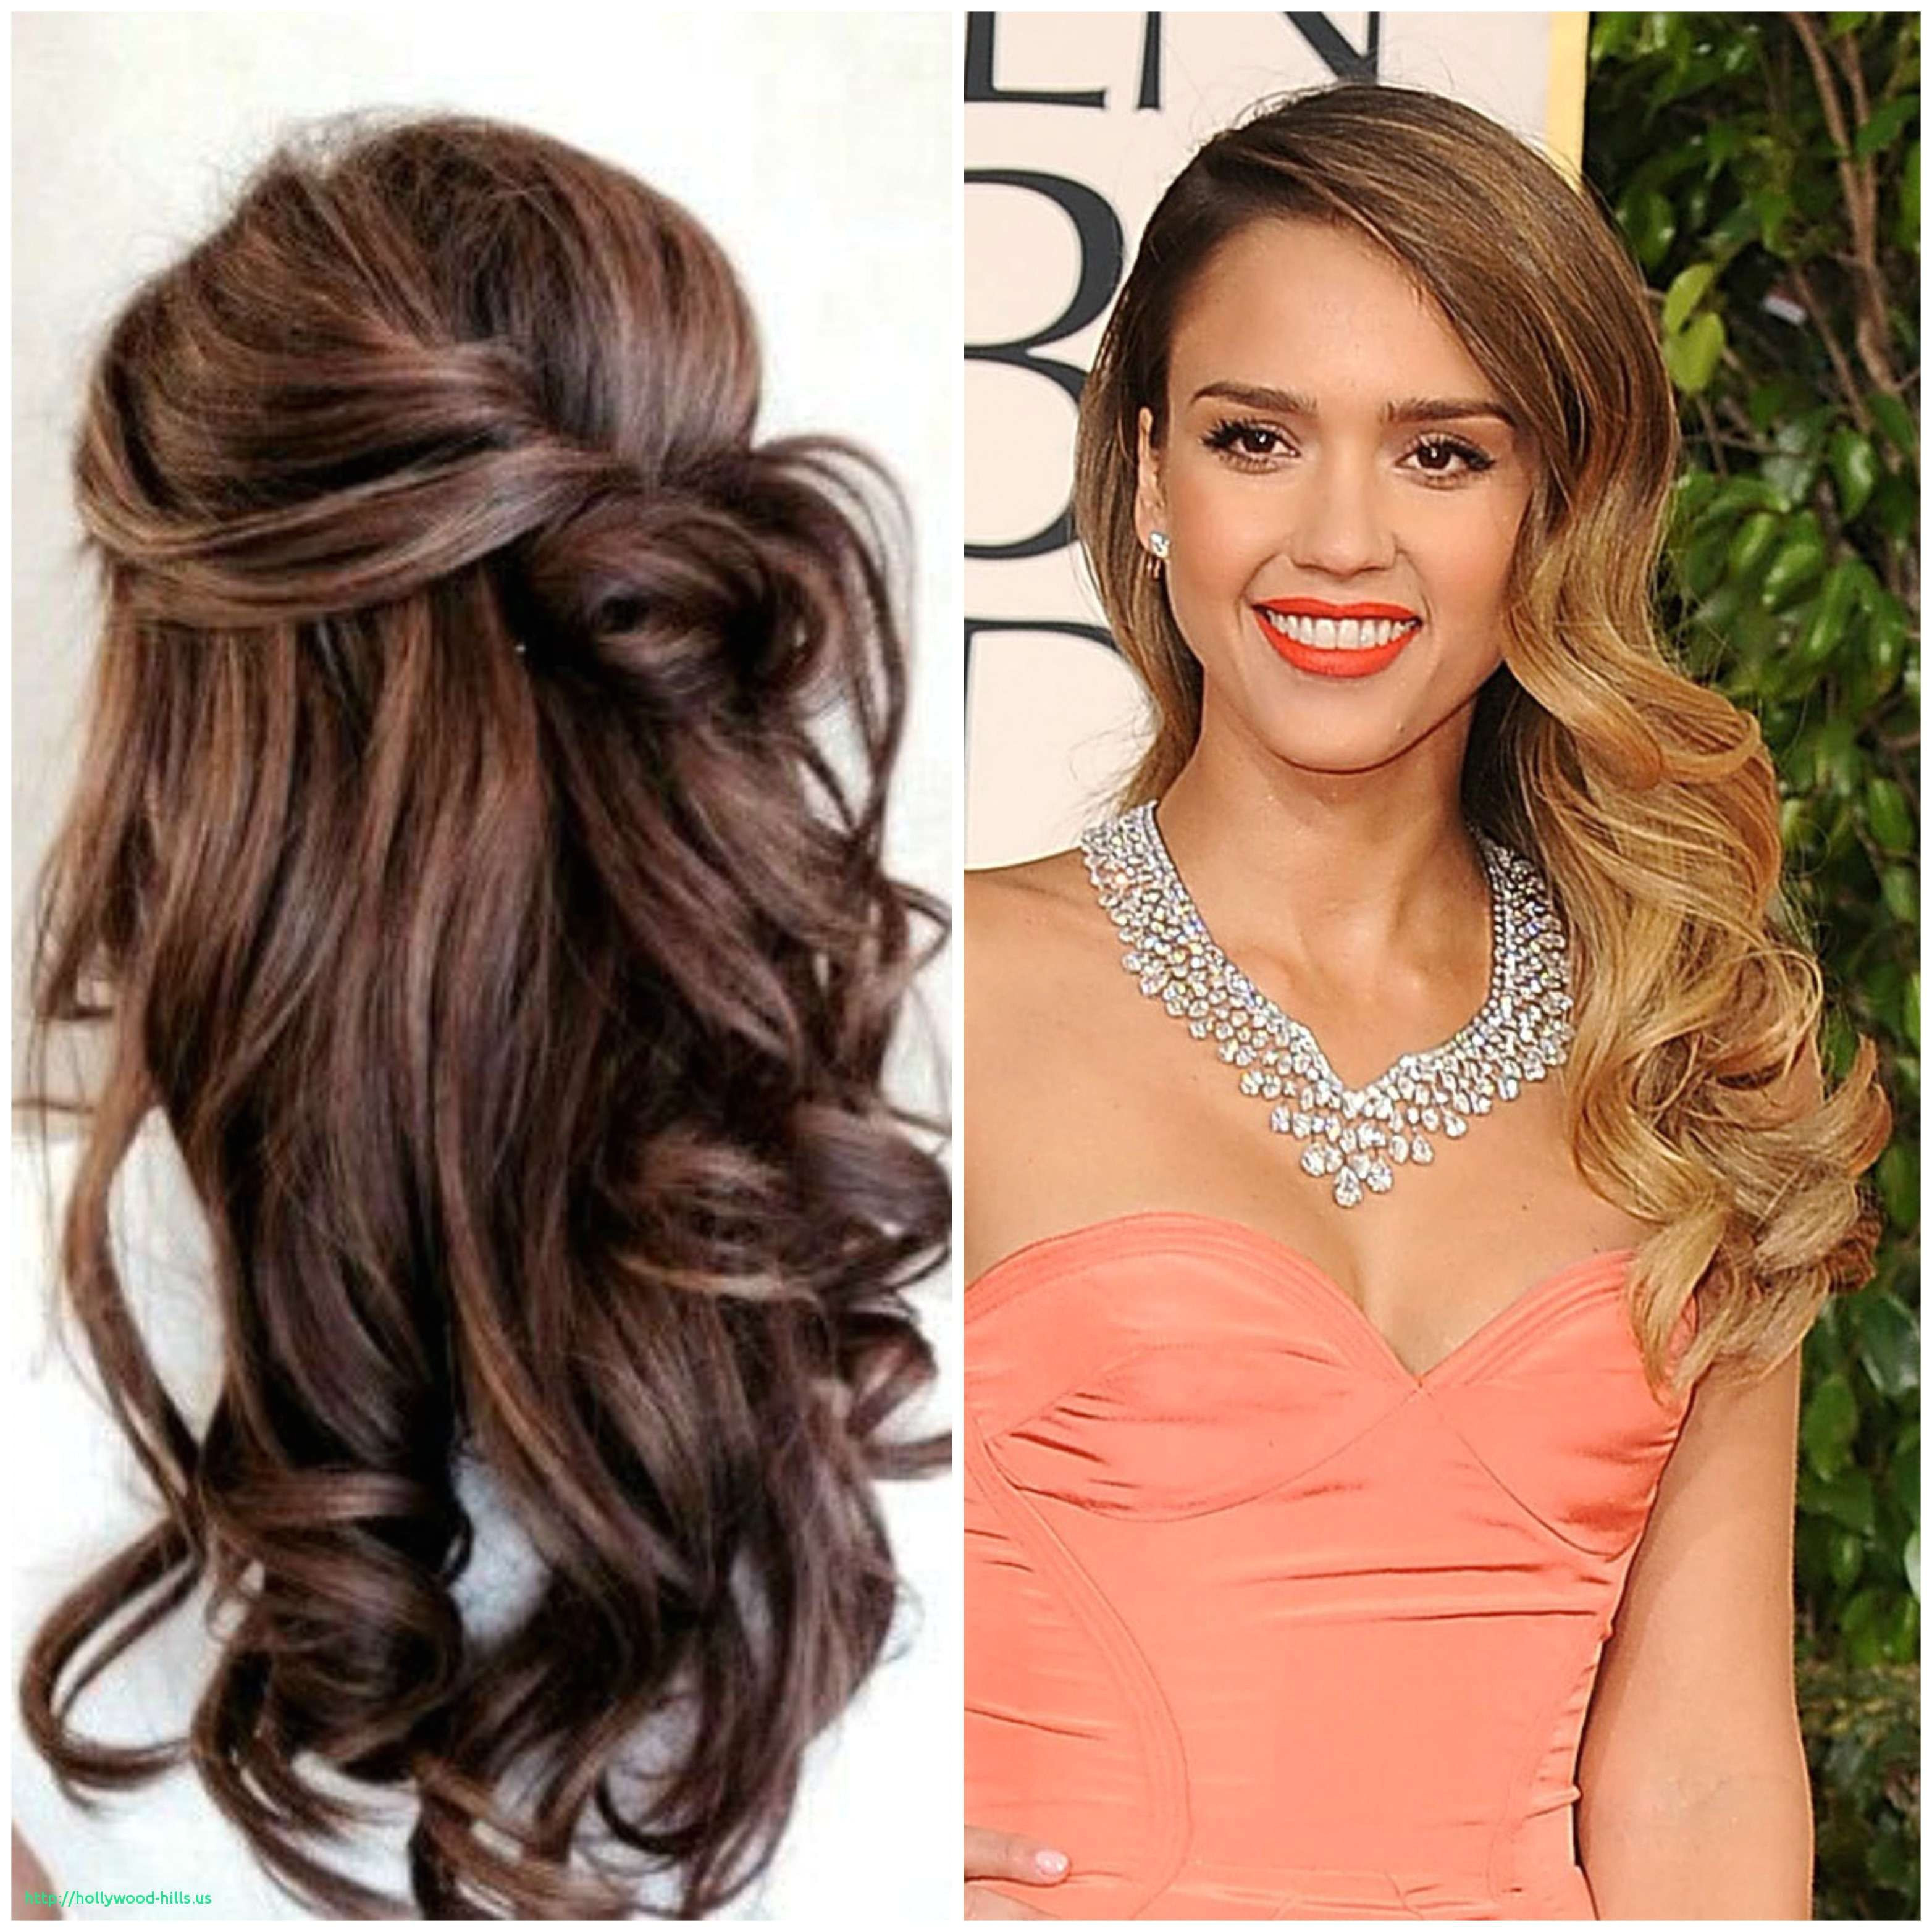 Hairstyles For Long Hair 2015 Luxury I Pinimg 1200x 0d 60 8a Furthermore Human Hair Color Elegant Easy Hairstyles for Short Hair Youtube